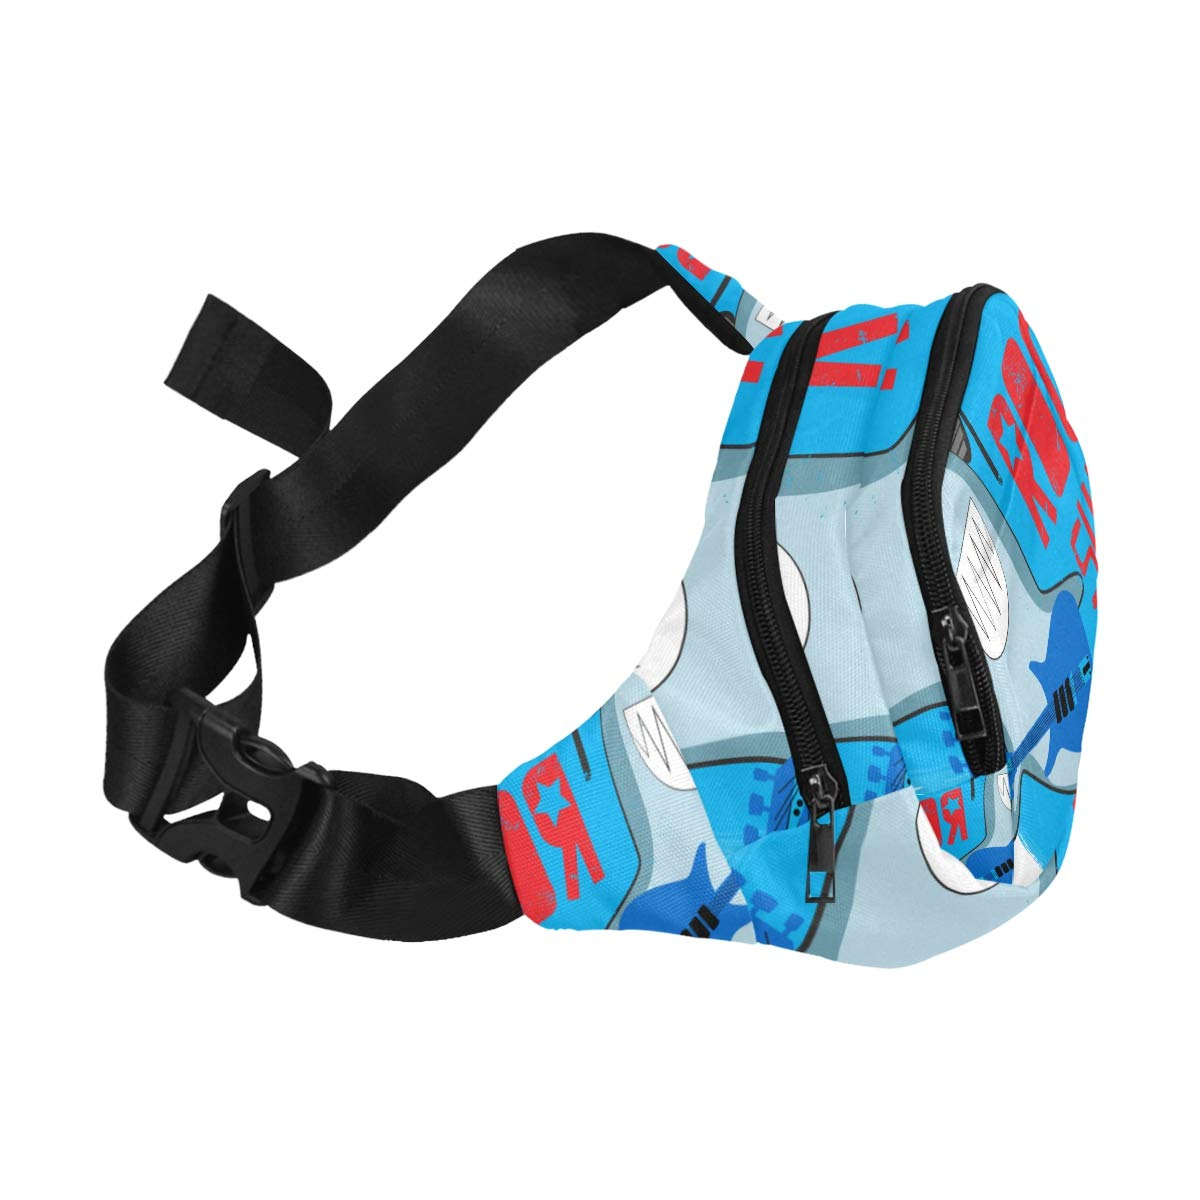 Cute Shark Listening To Music Fenny Packs Waist Bags Adjustable Belt Waterproof Nylon Travel Running Sport Vacation Party For Men Women Boys Girls Kids